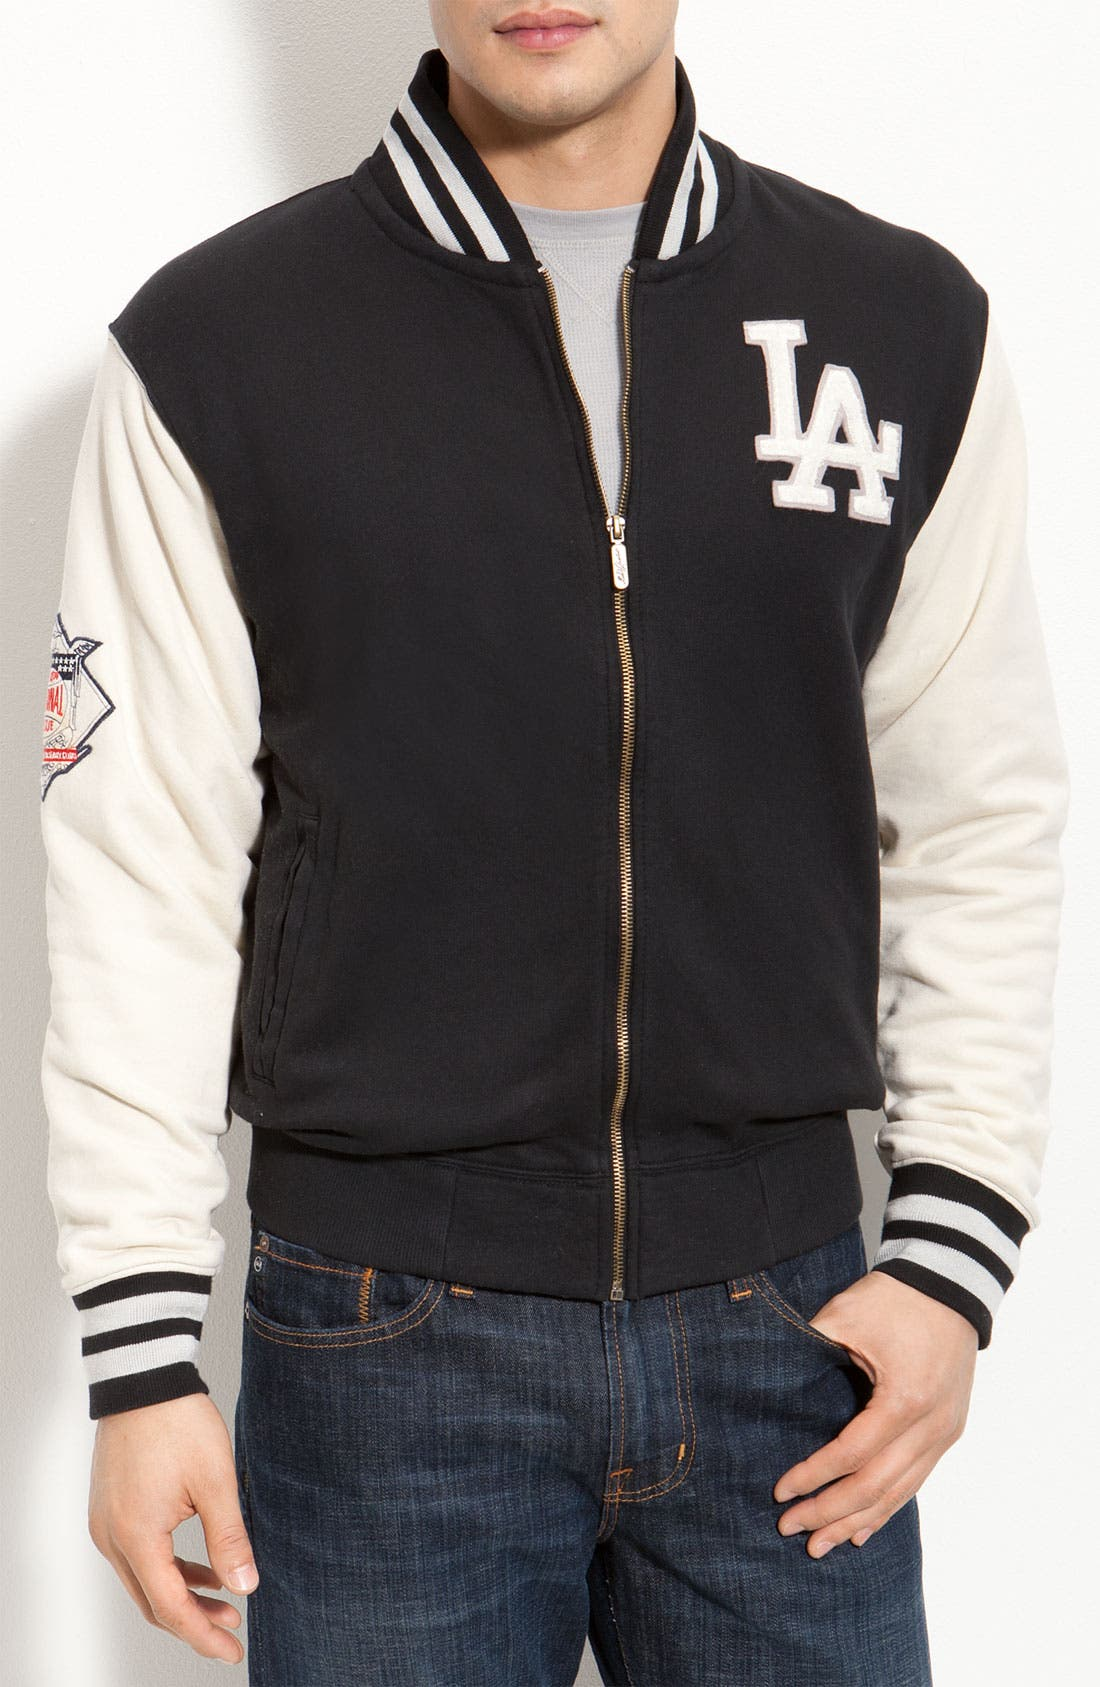 Main Image - Red Jacket 'Los Angeles Dodgers - Homeroom' Jacket